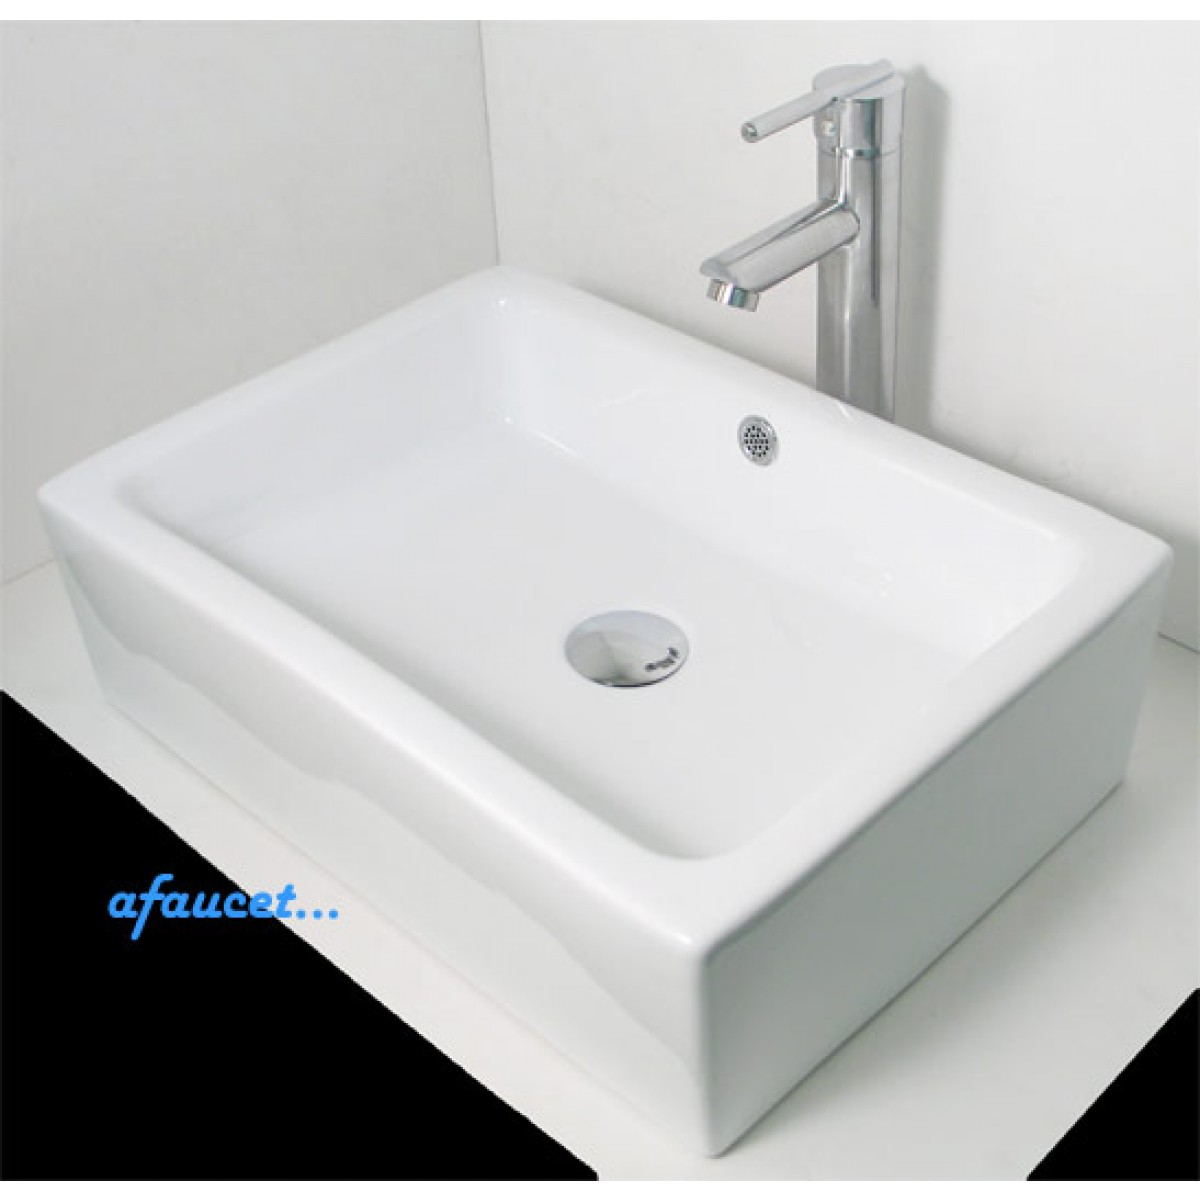 14 inch bathroom sink rectangular porcelain ceramic white black bathroom 15253